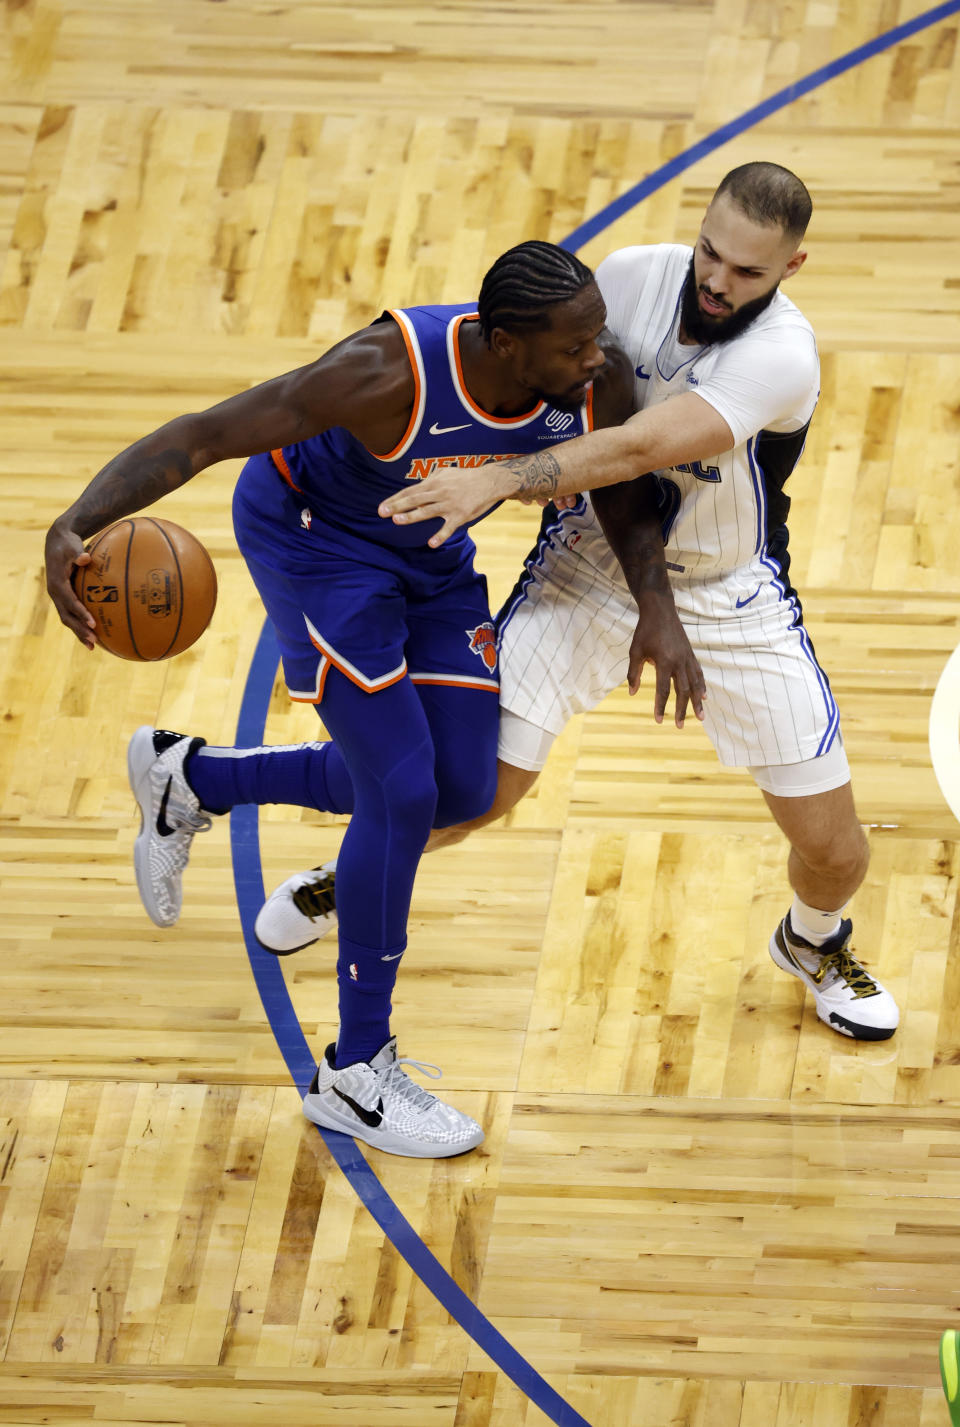 Feb 17, 2021; Orlando, Florida, USA; New York Knicks forward Julius Randle (30) moves to the basket as Orlando Magic guard Evan Fournier (10) defends during the first quarter at Amway Center. Mandatory Credit: Kim Klement-USA TODAY Sports